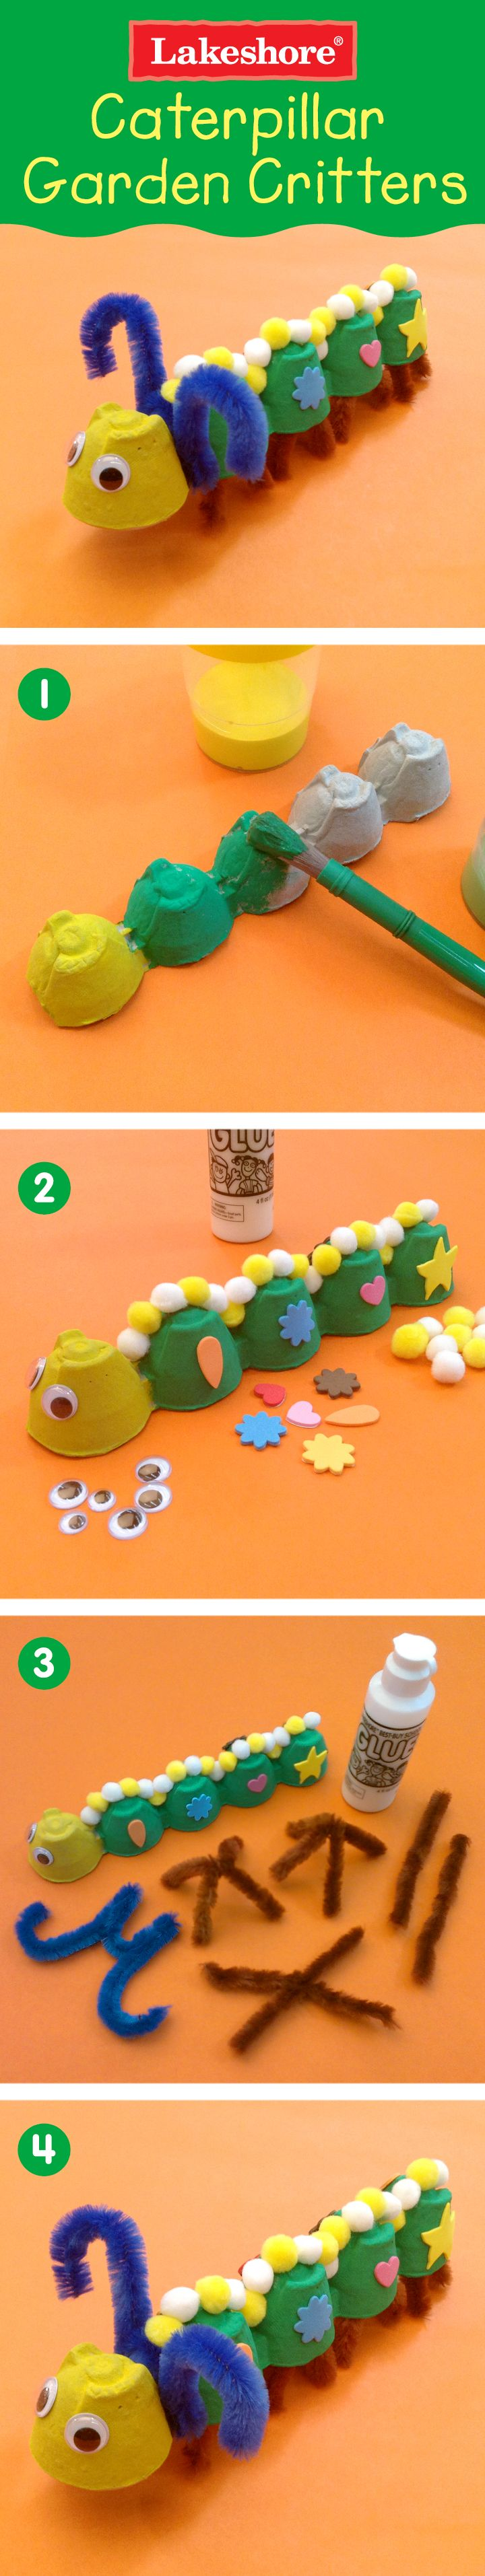 Introduce your students to the fun of reusing and recycling—with this creative Earth Day project with these Caterpillar Garden critters!